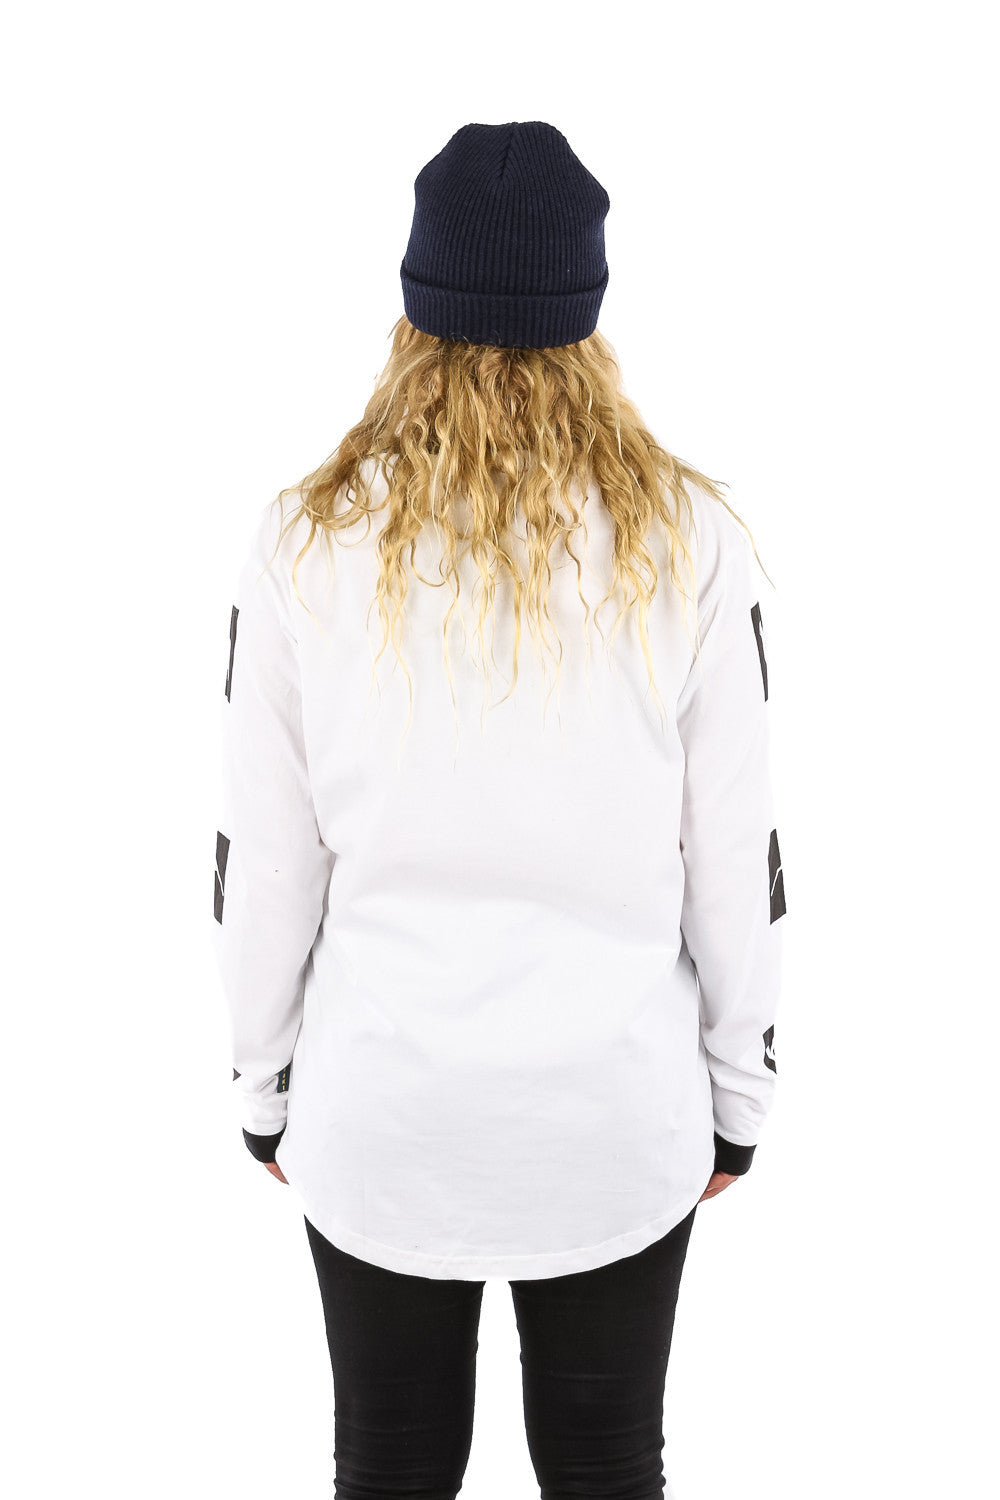 Gang Related Long Sleeve Tee White - Yuki Threads